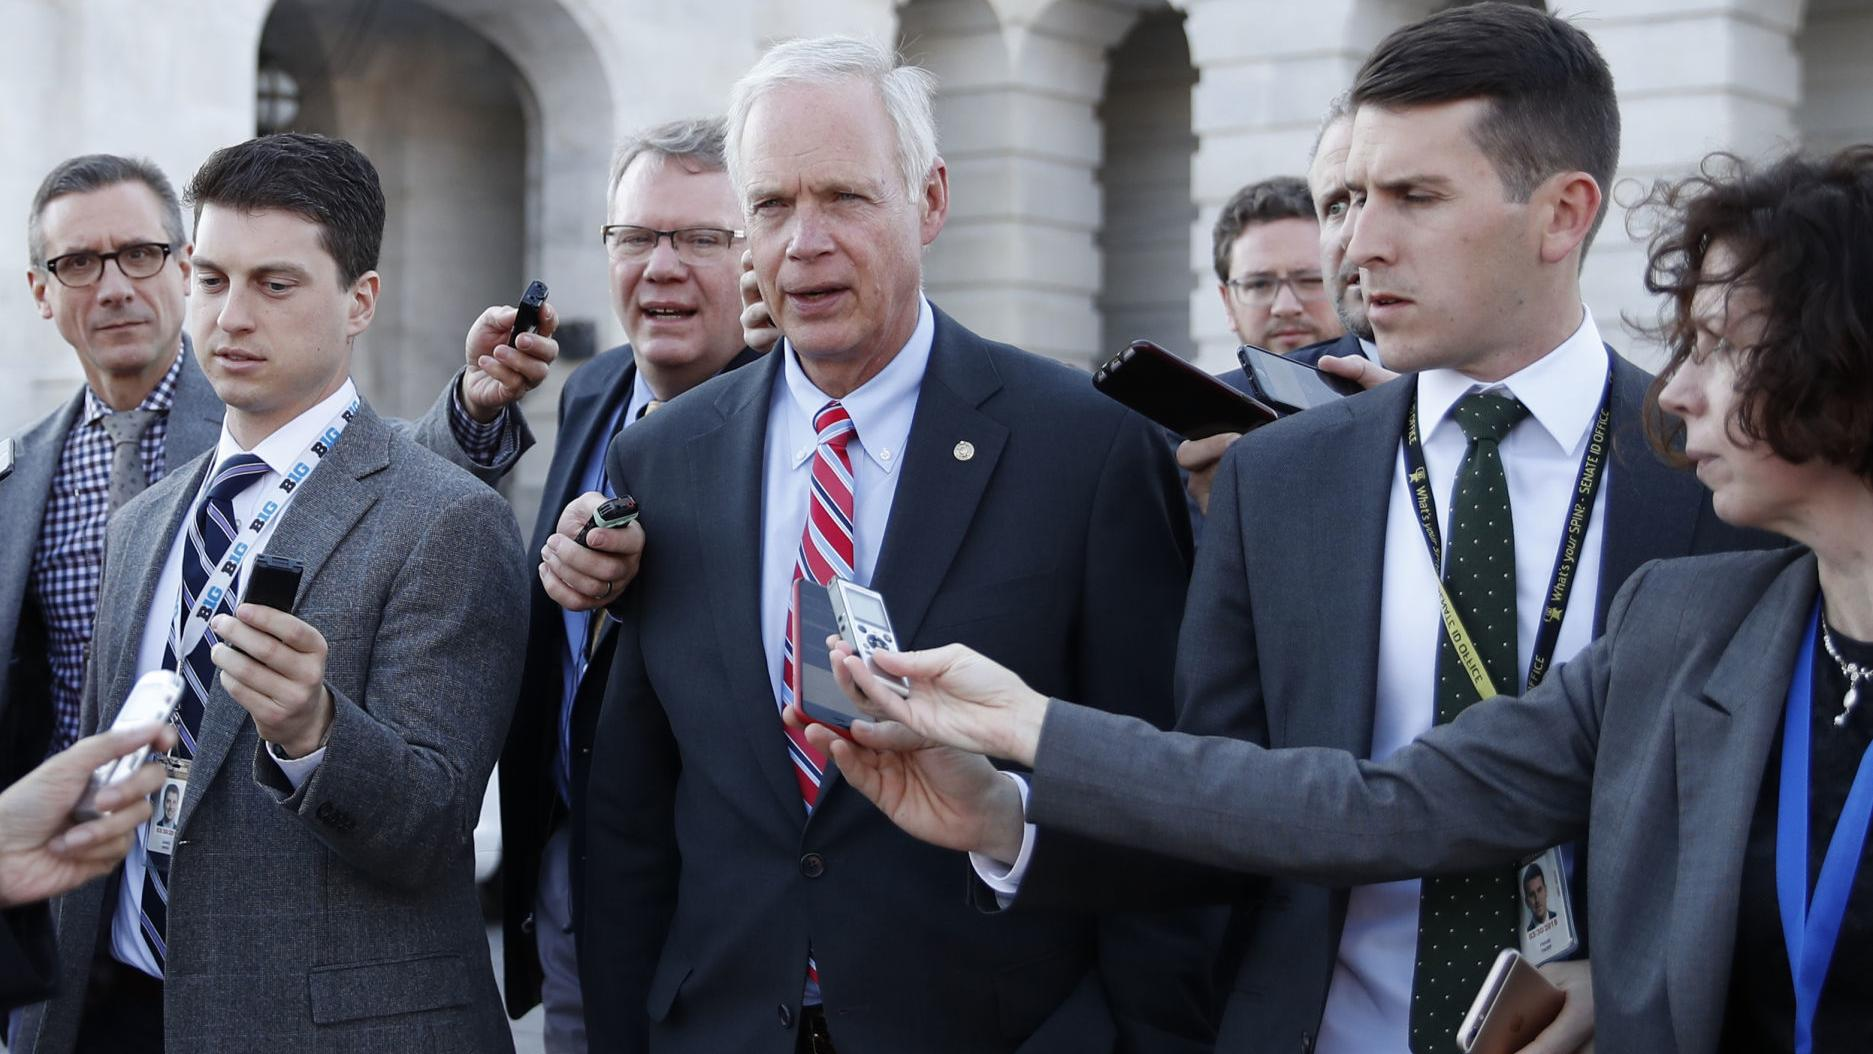 Sen. Ron Johnson should join GOP revolt for sensible gun laws